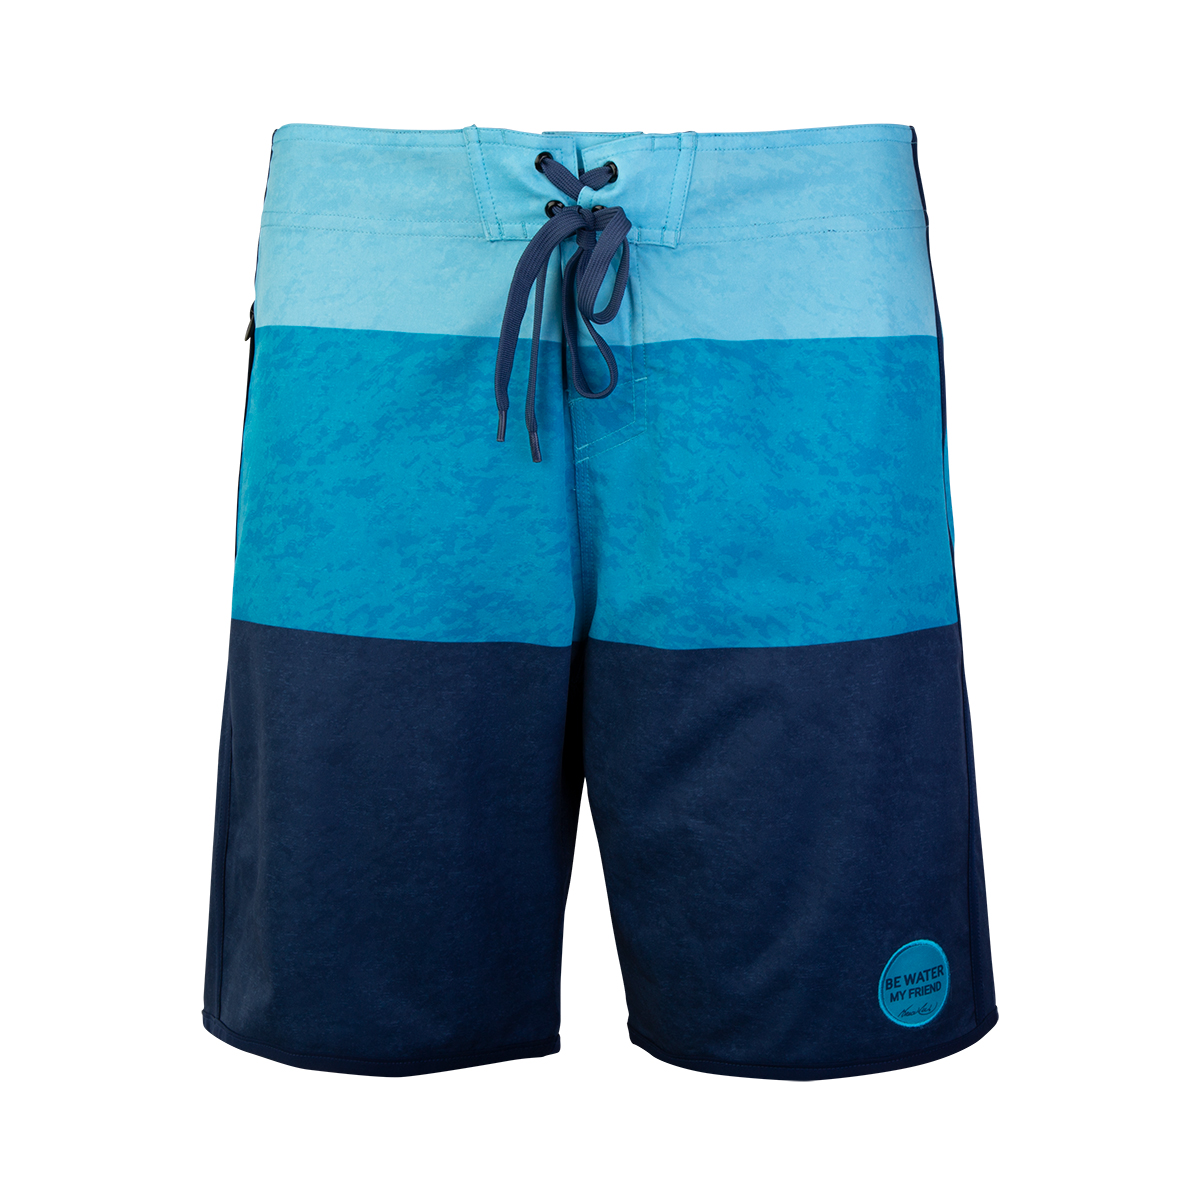 Be Water, My Friend Board Shorts